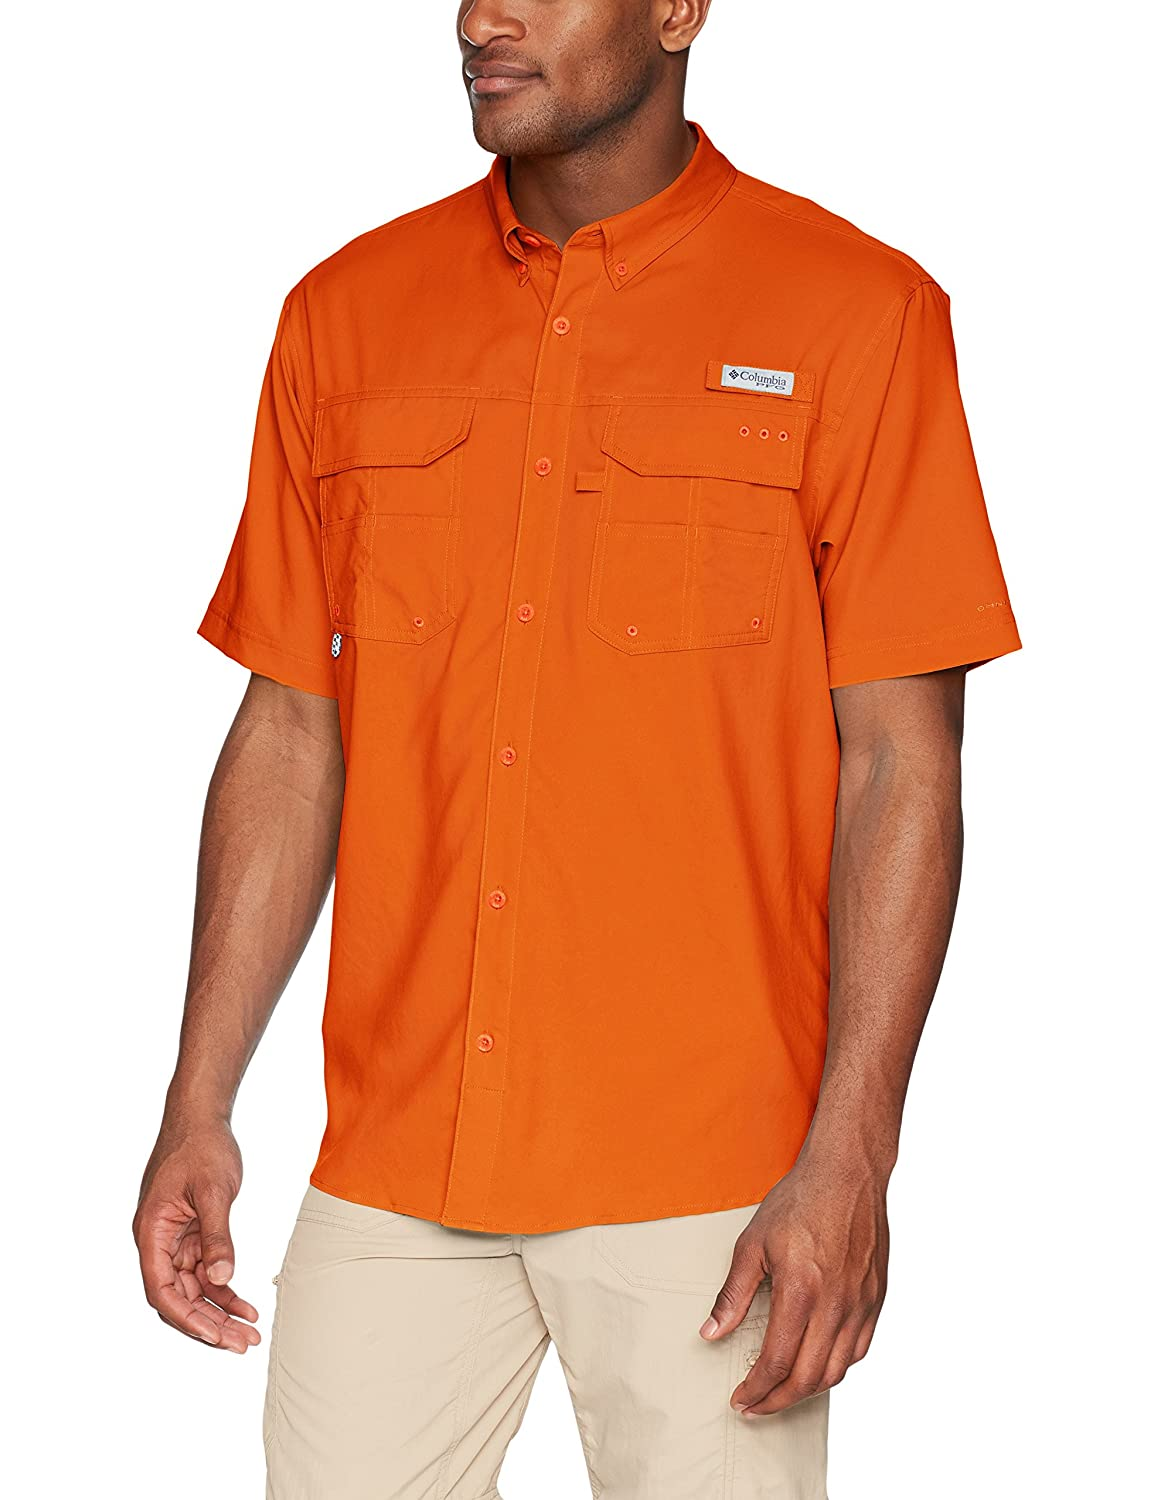 302fa03467f ... out in the elements, this UPF 50 sun-protecting short-sleeve fishing  shirt is crafted from a lightweight, cool-wearing fabric with our Blood \'N  Guts ...